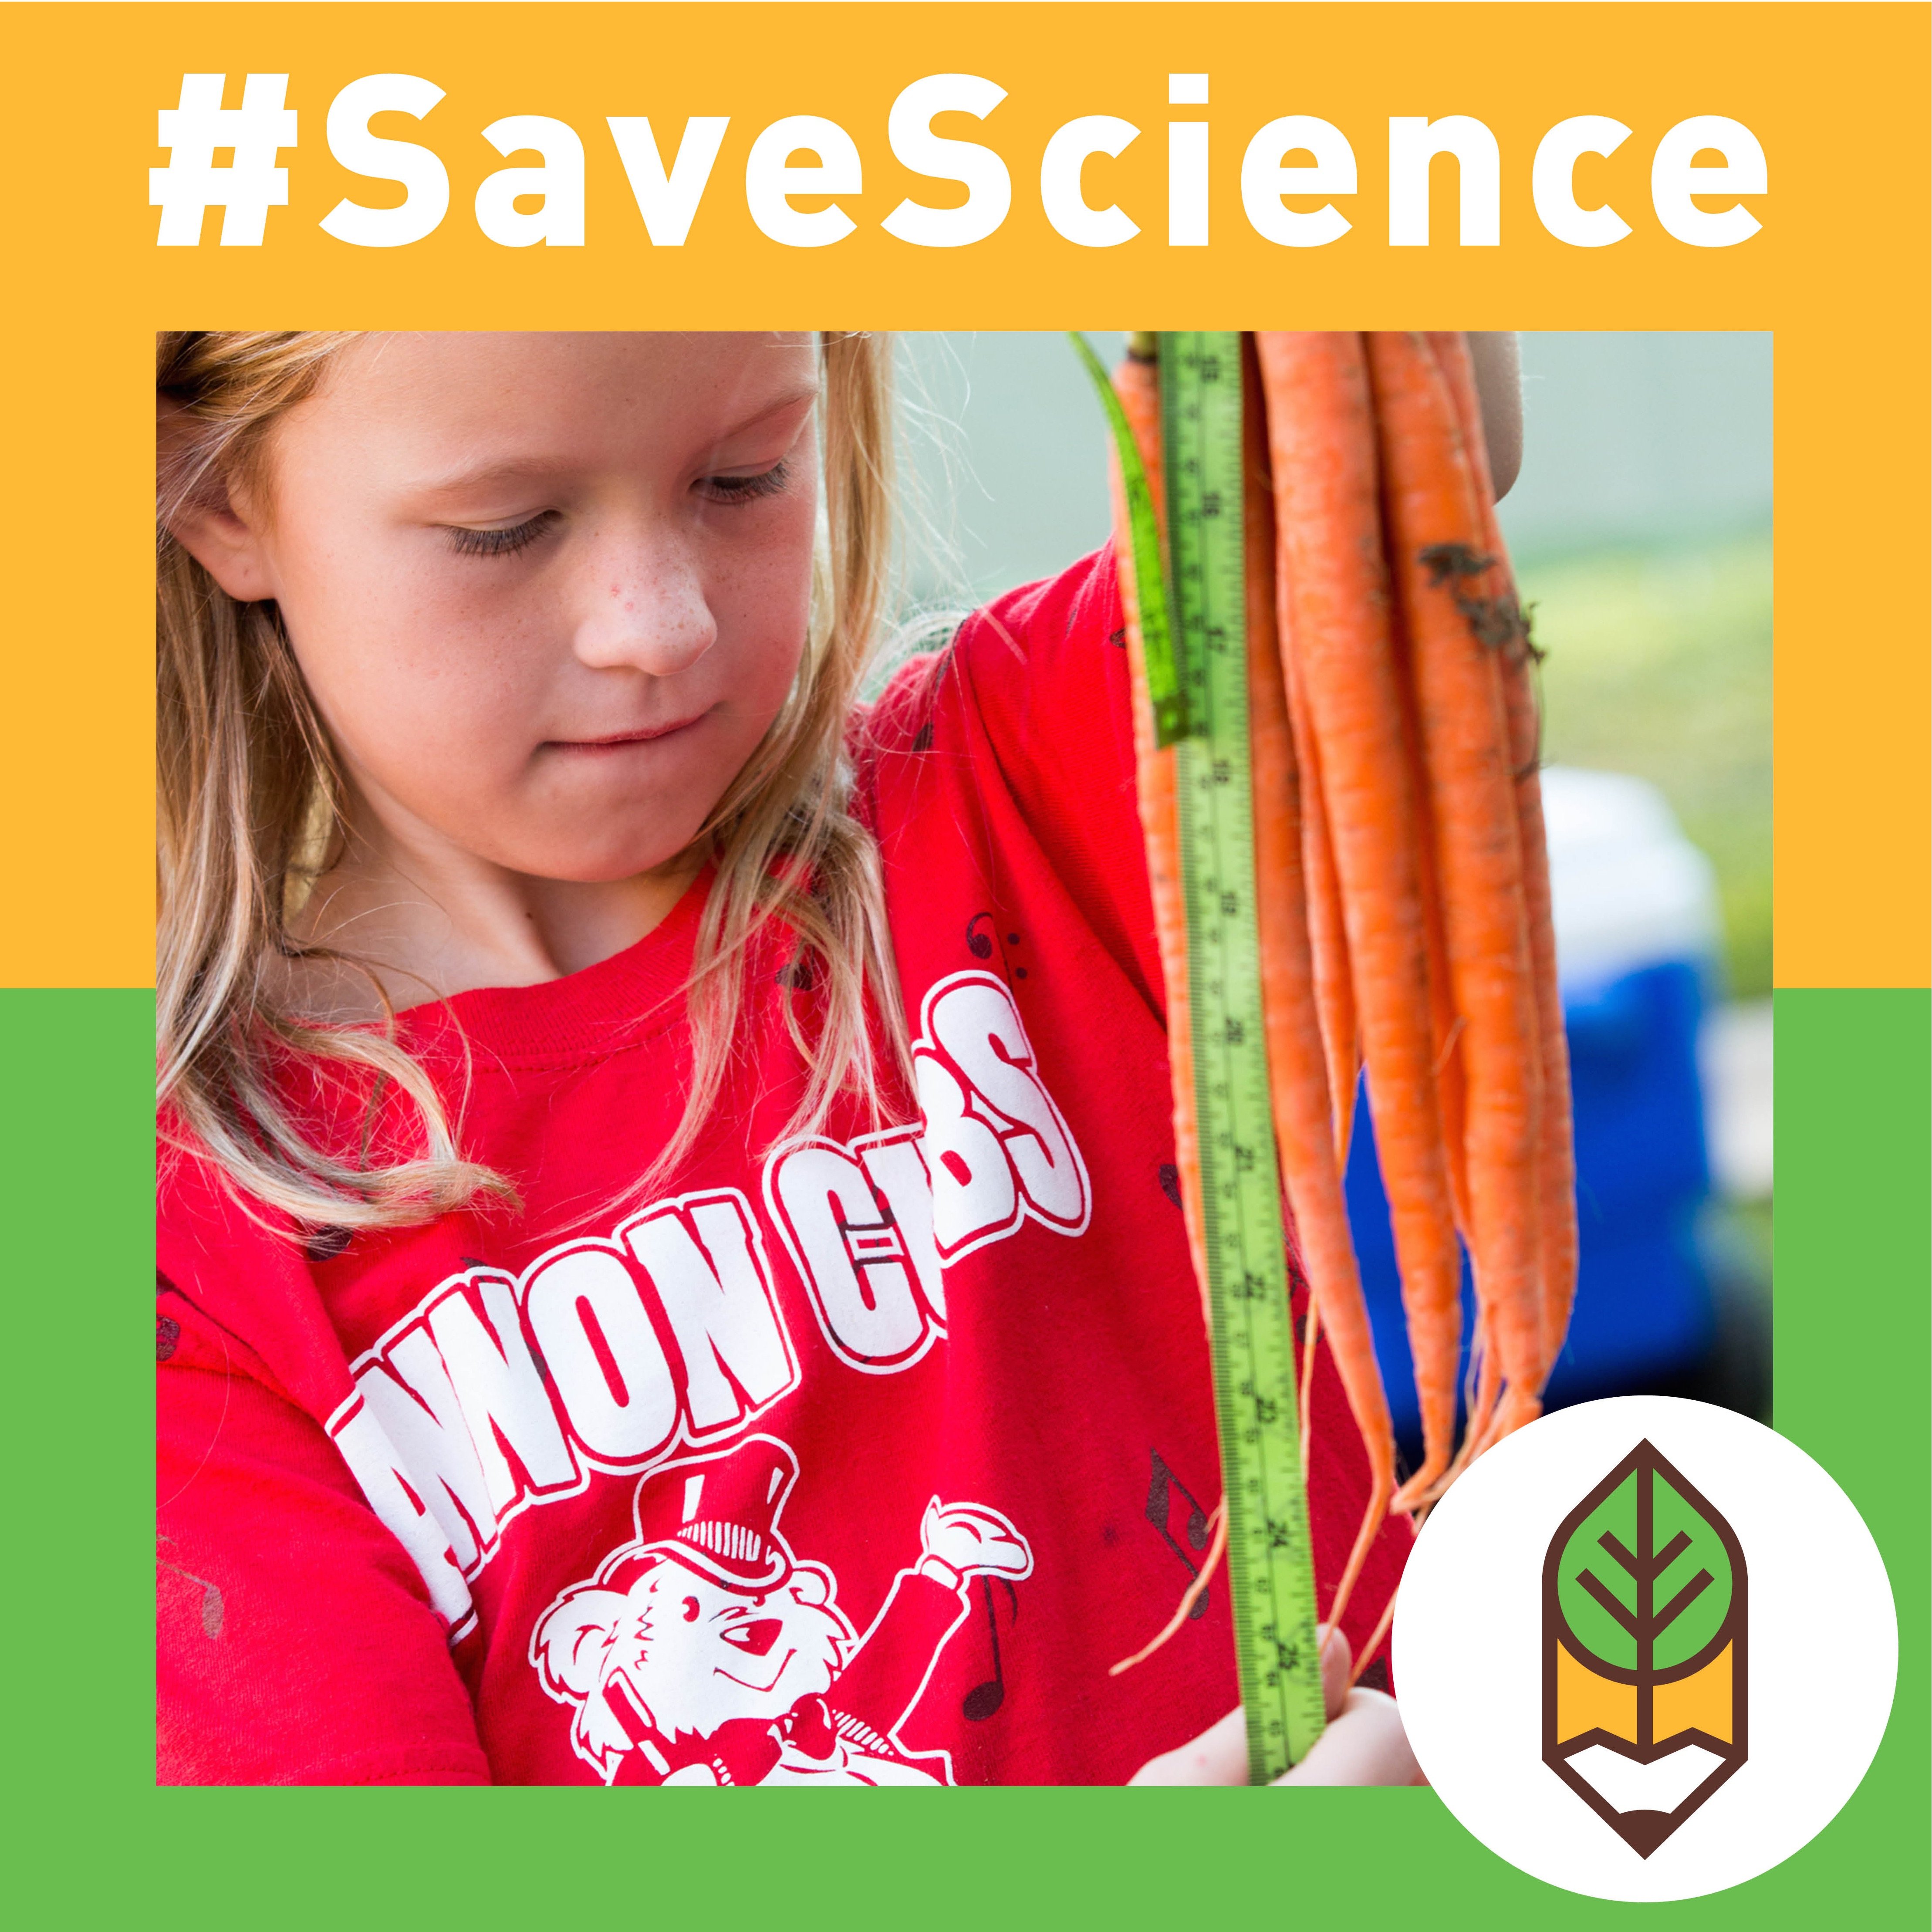 savescience_kids_11